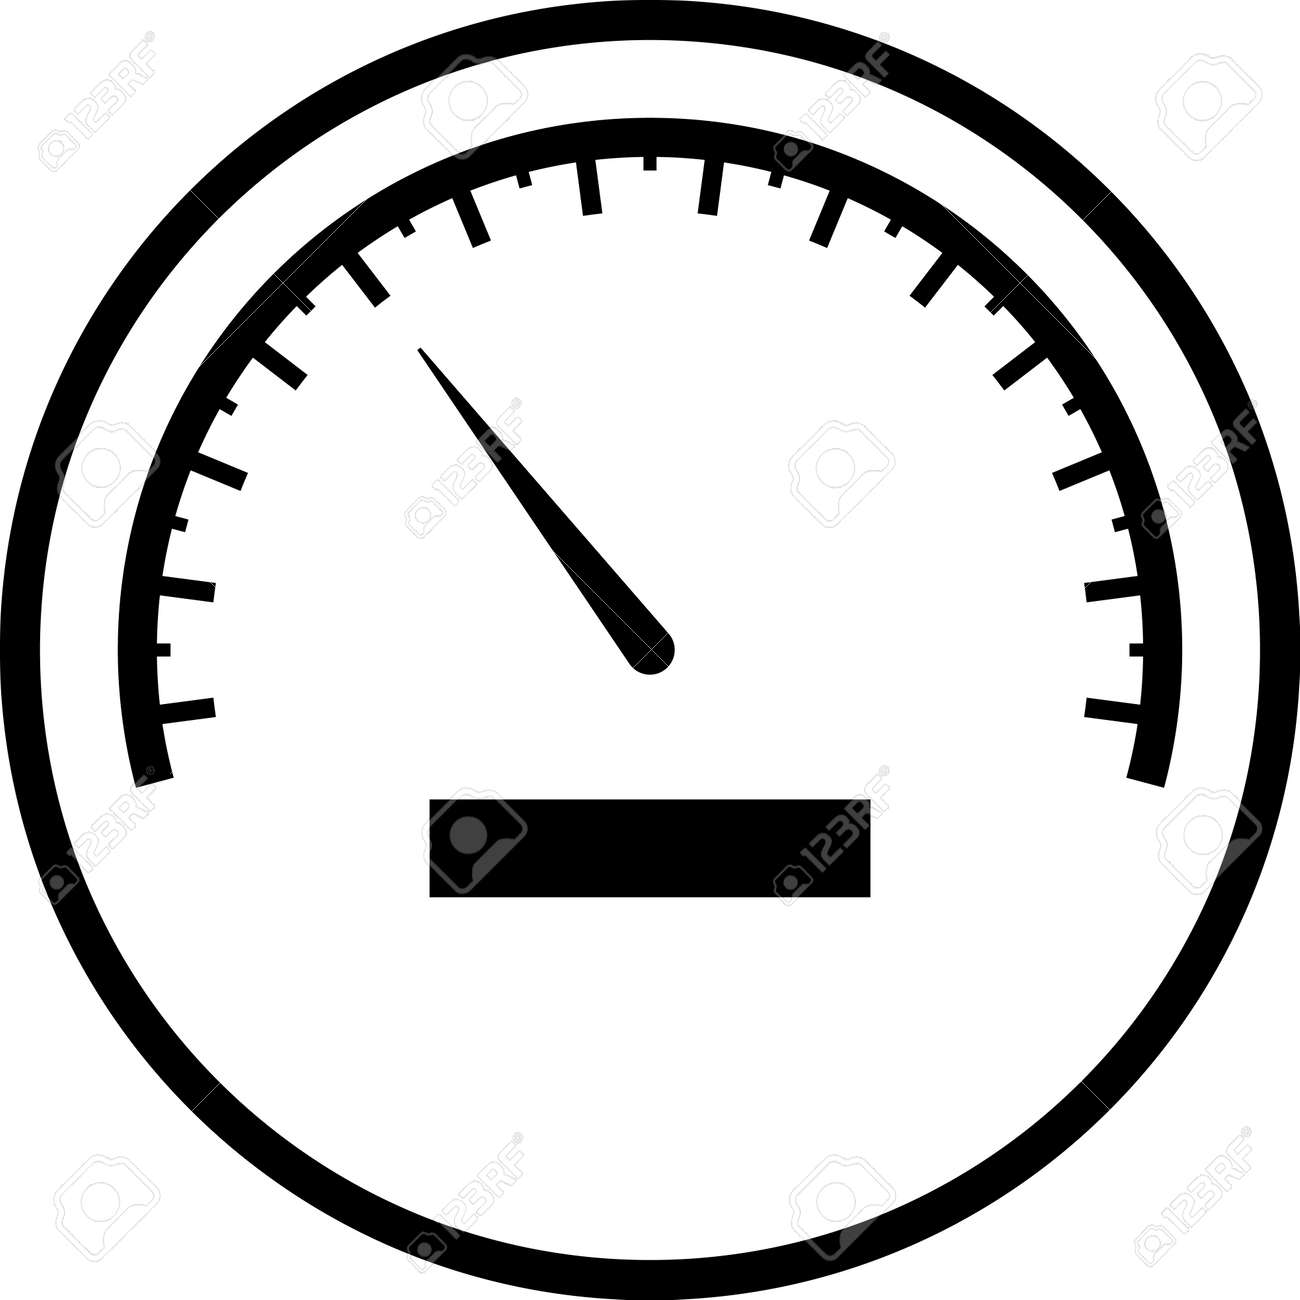 speedometer vector icon royalty free cliparts vectors and stock rh 123rf com speedometer vector free car speedometer vector